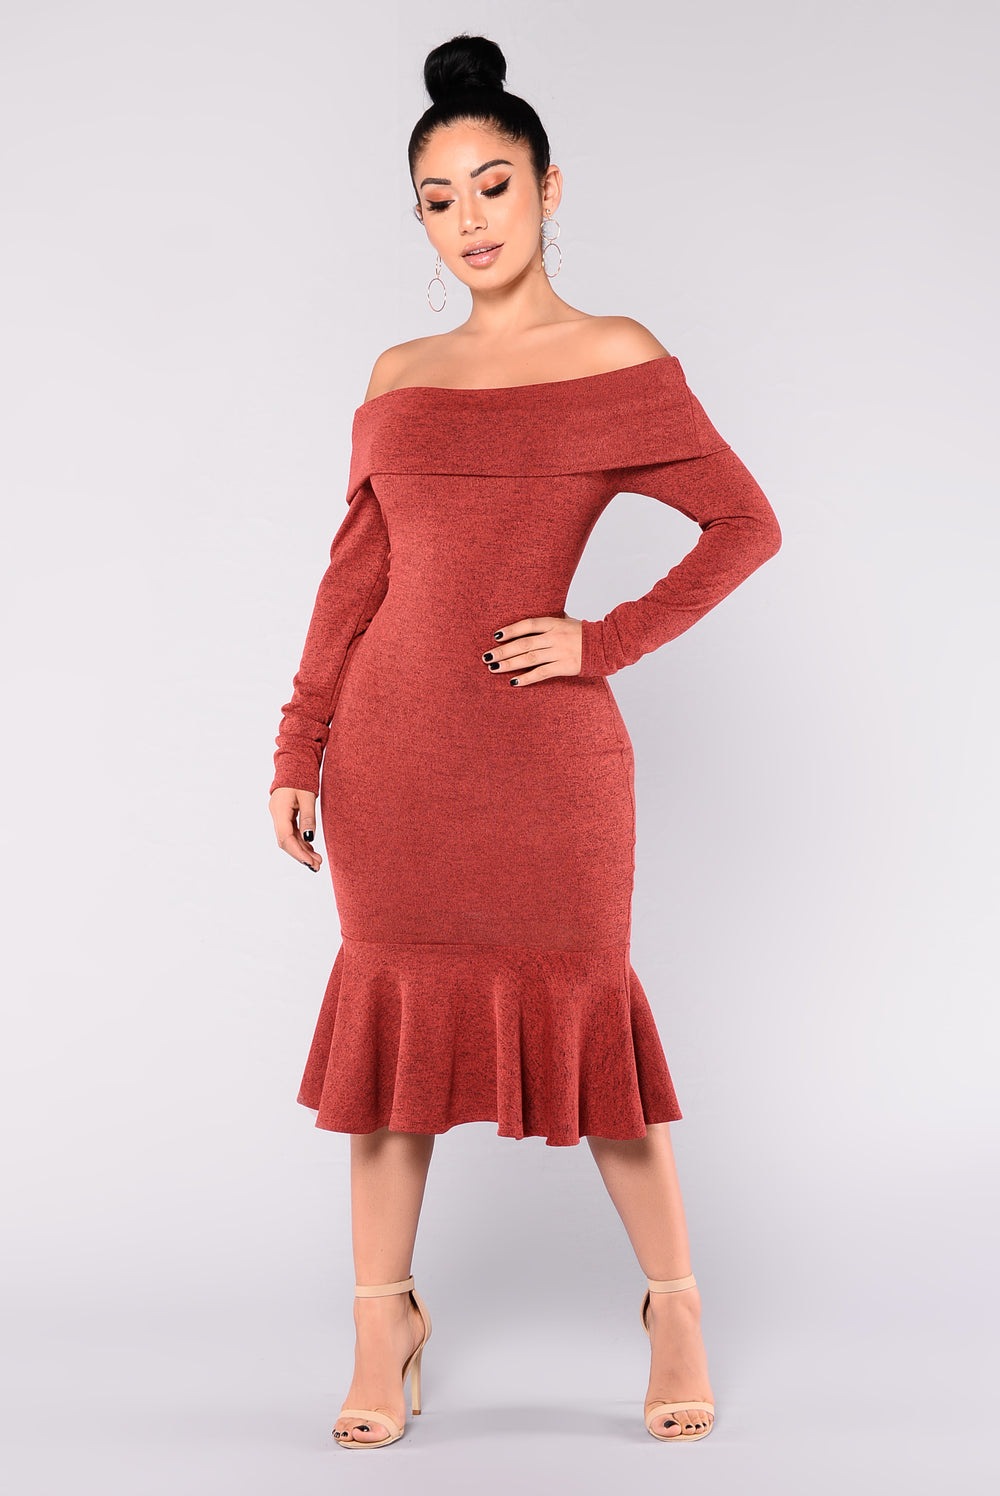 Mimi Mermaid Off Shoulder Dress - Auburn